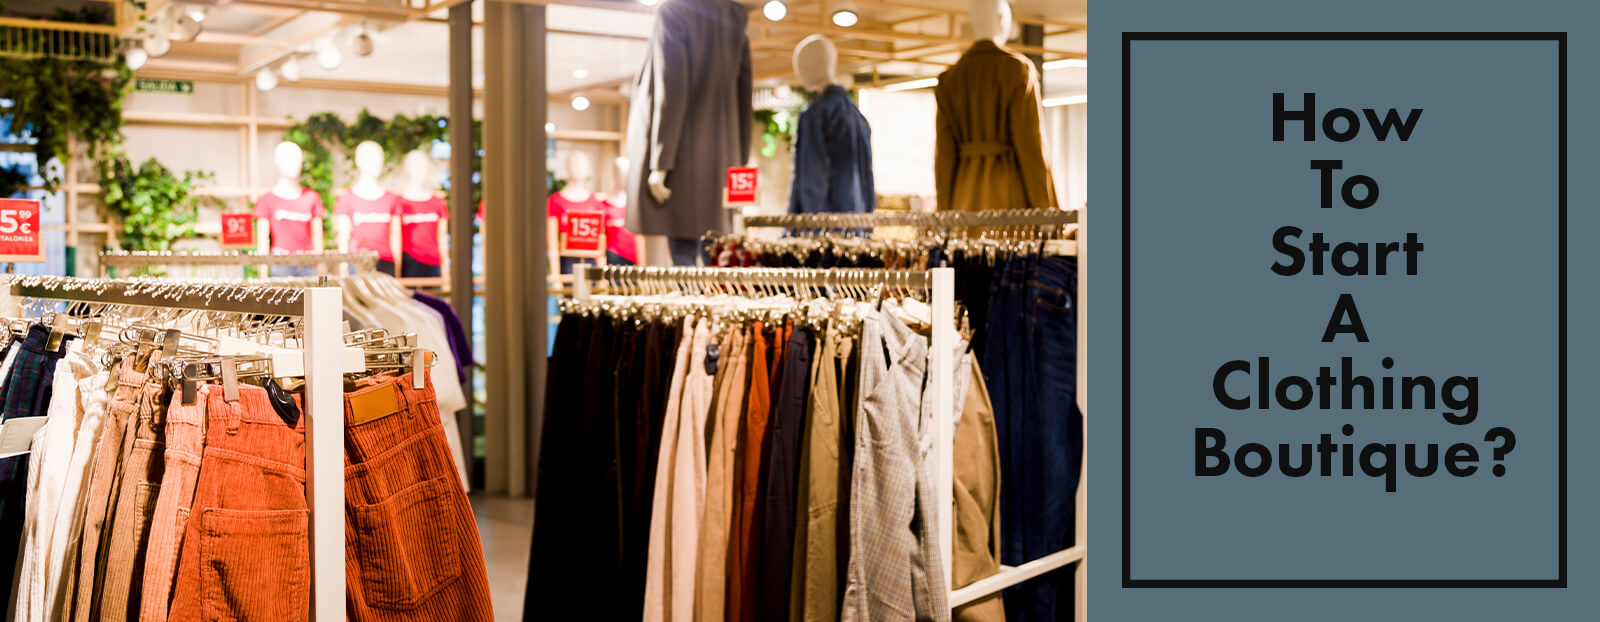 How To Start A Clothing Boutique?